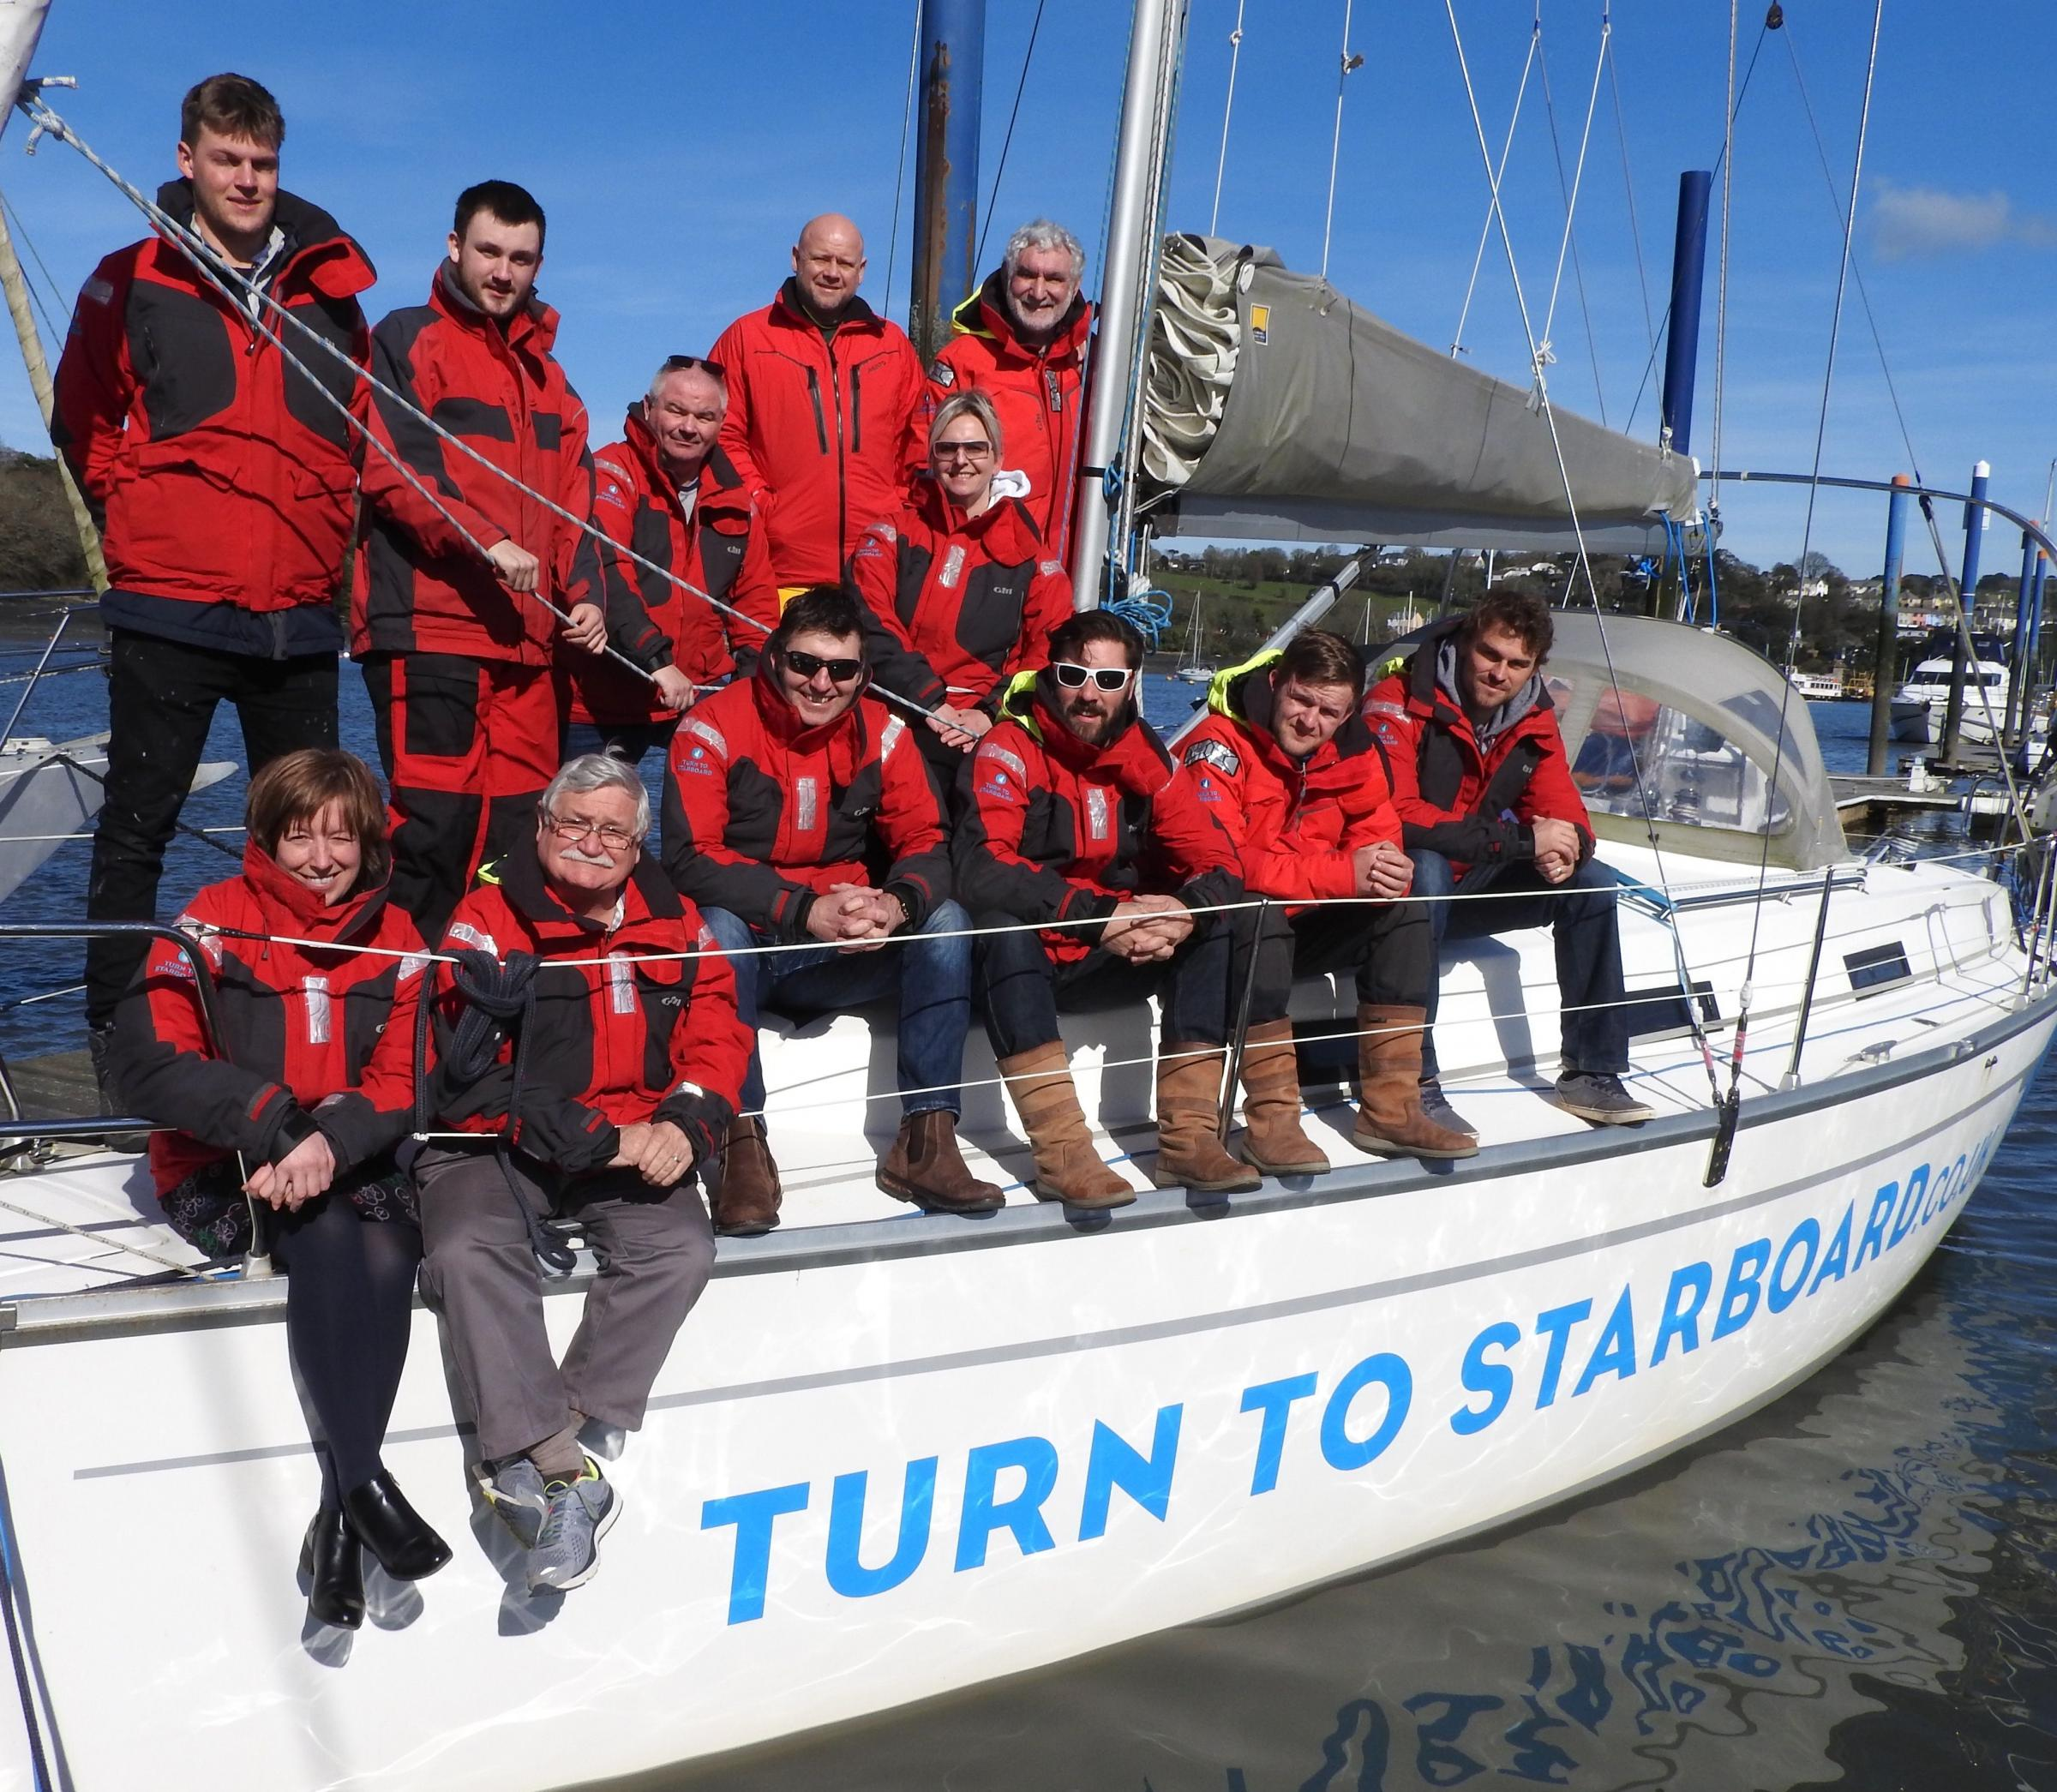 Staff and beneficiaries from Turn to Starboard get ready to race